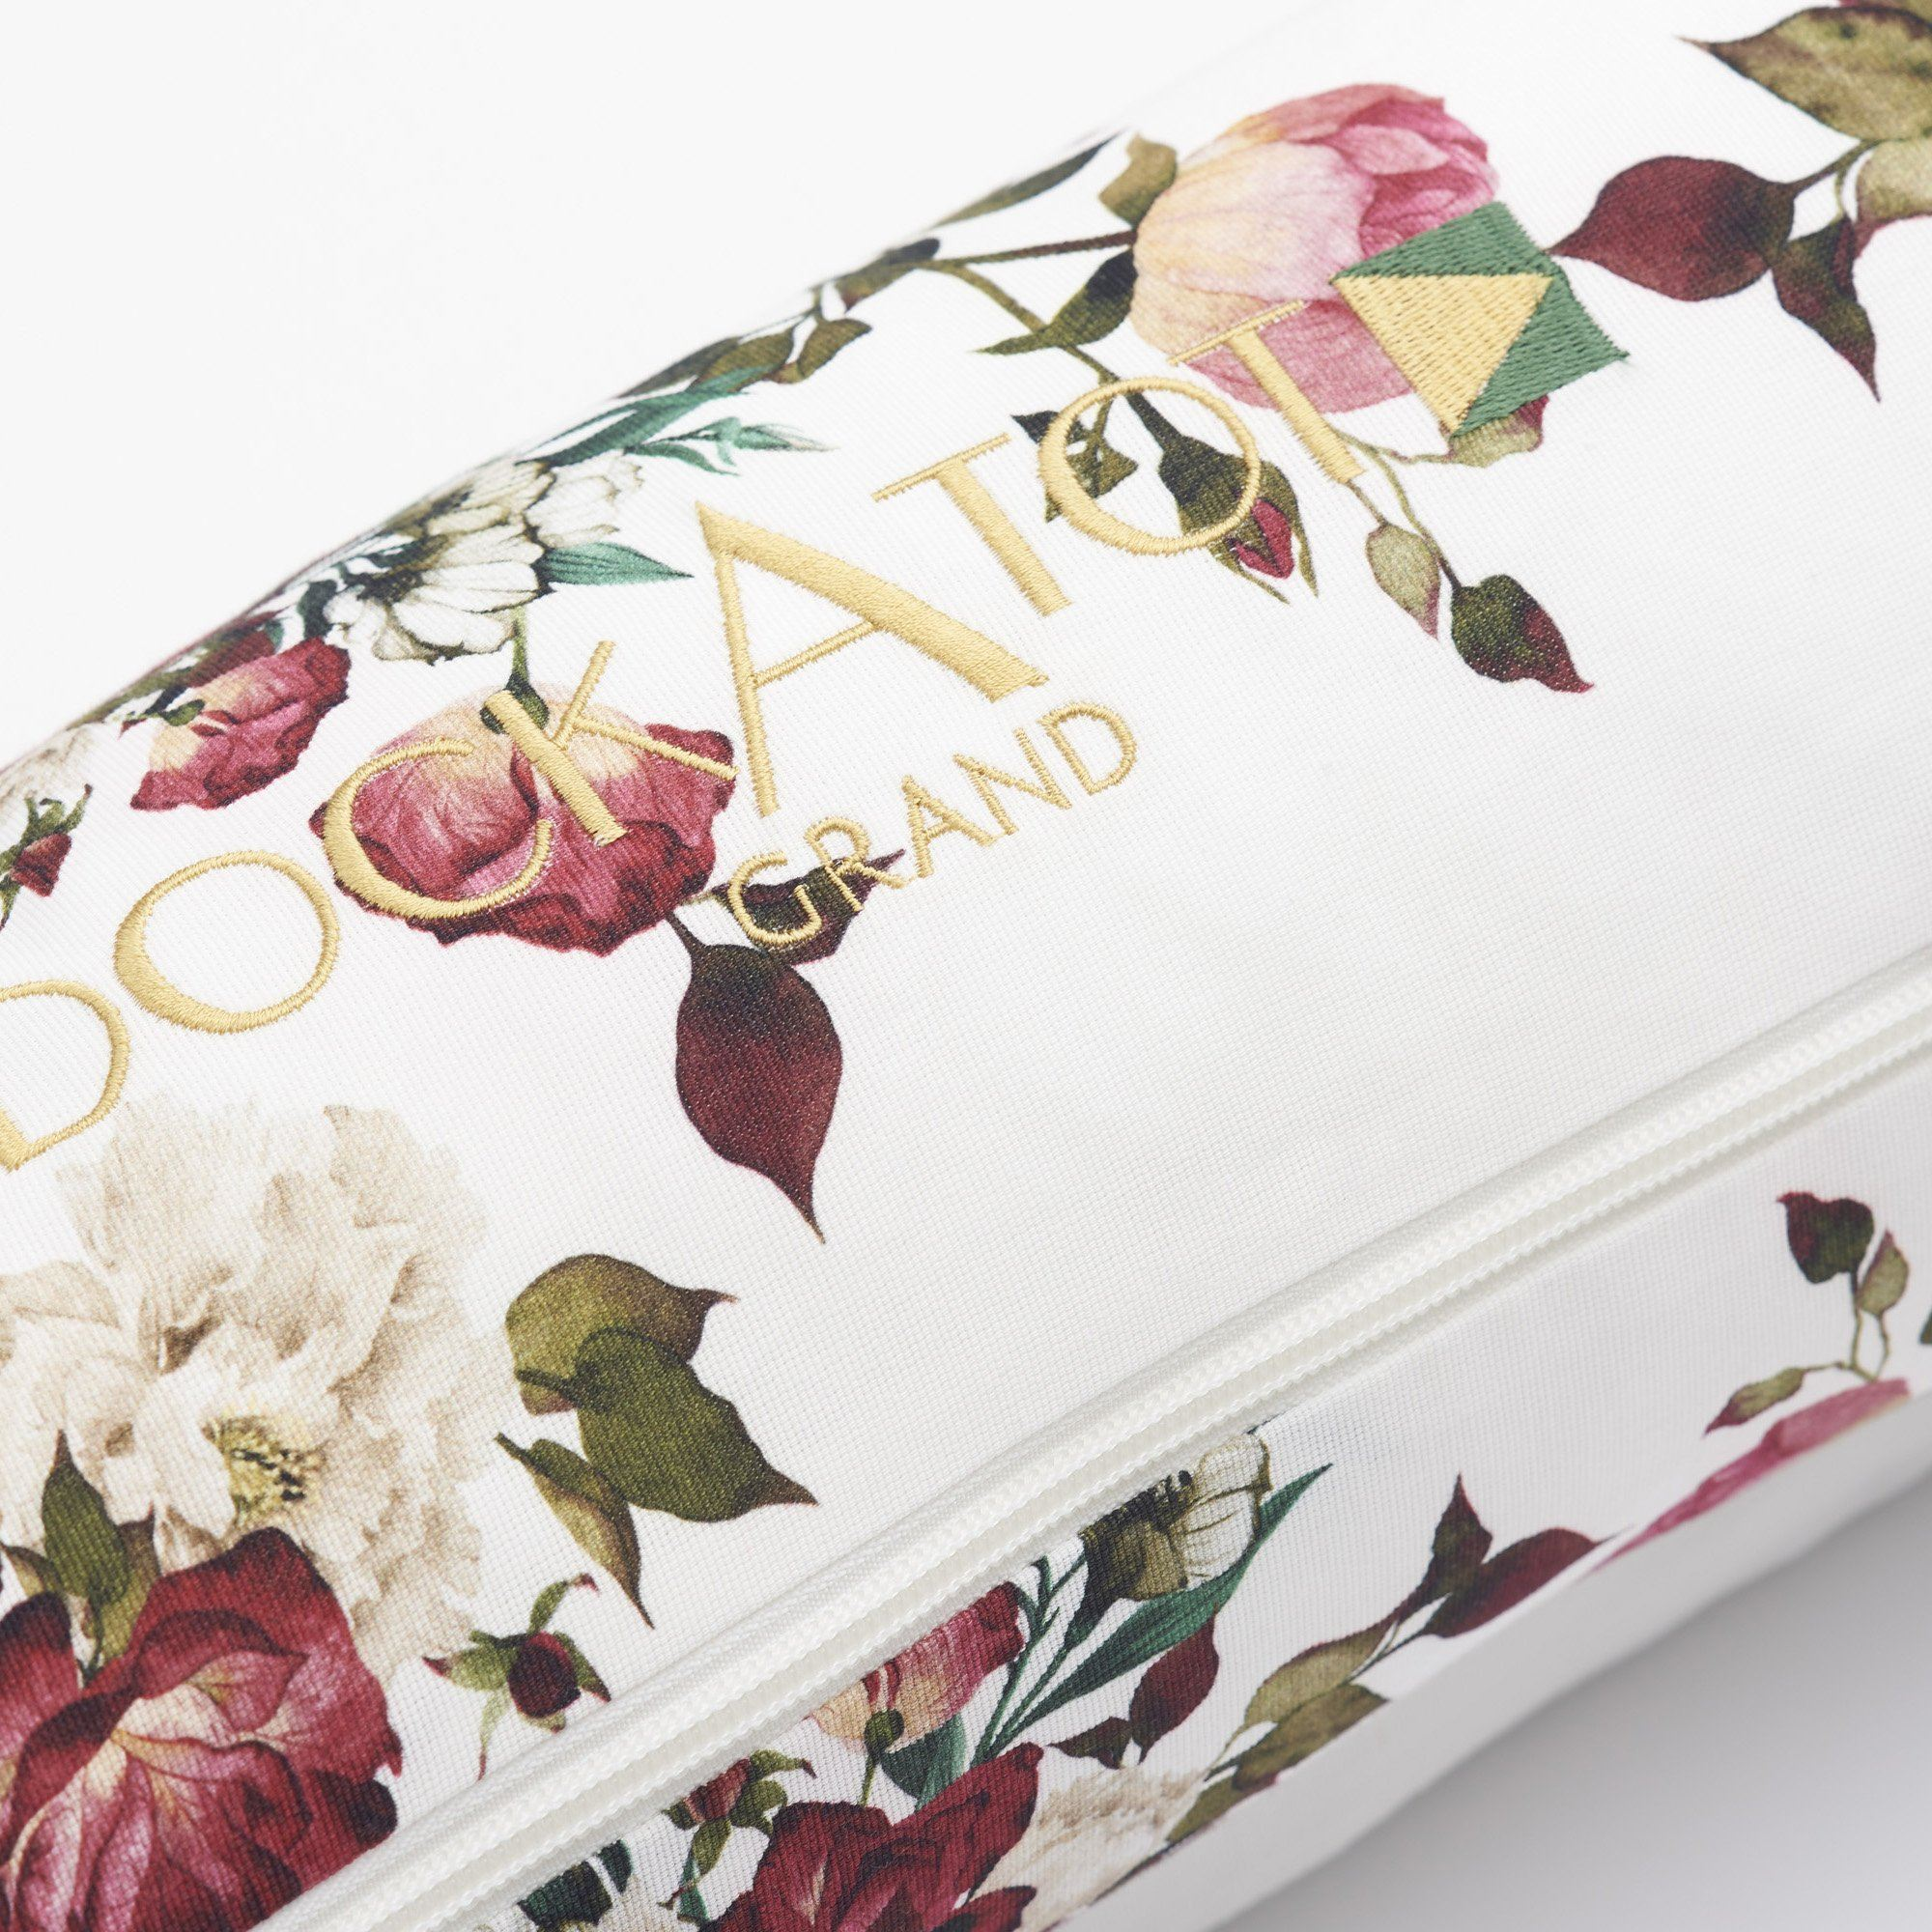 DockATot Grand Dock Cover - La Vie en Rose - Project Nursery